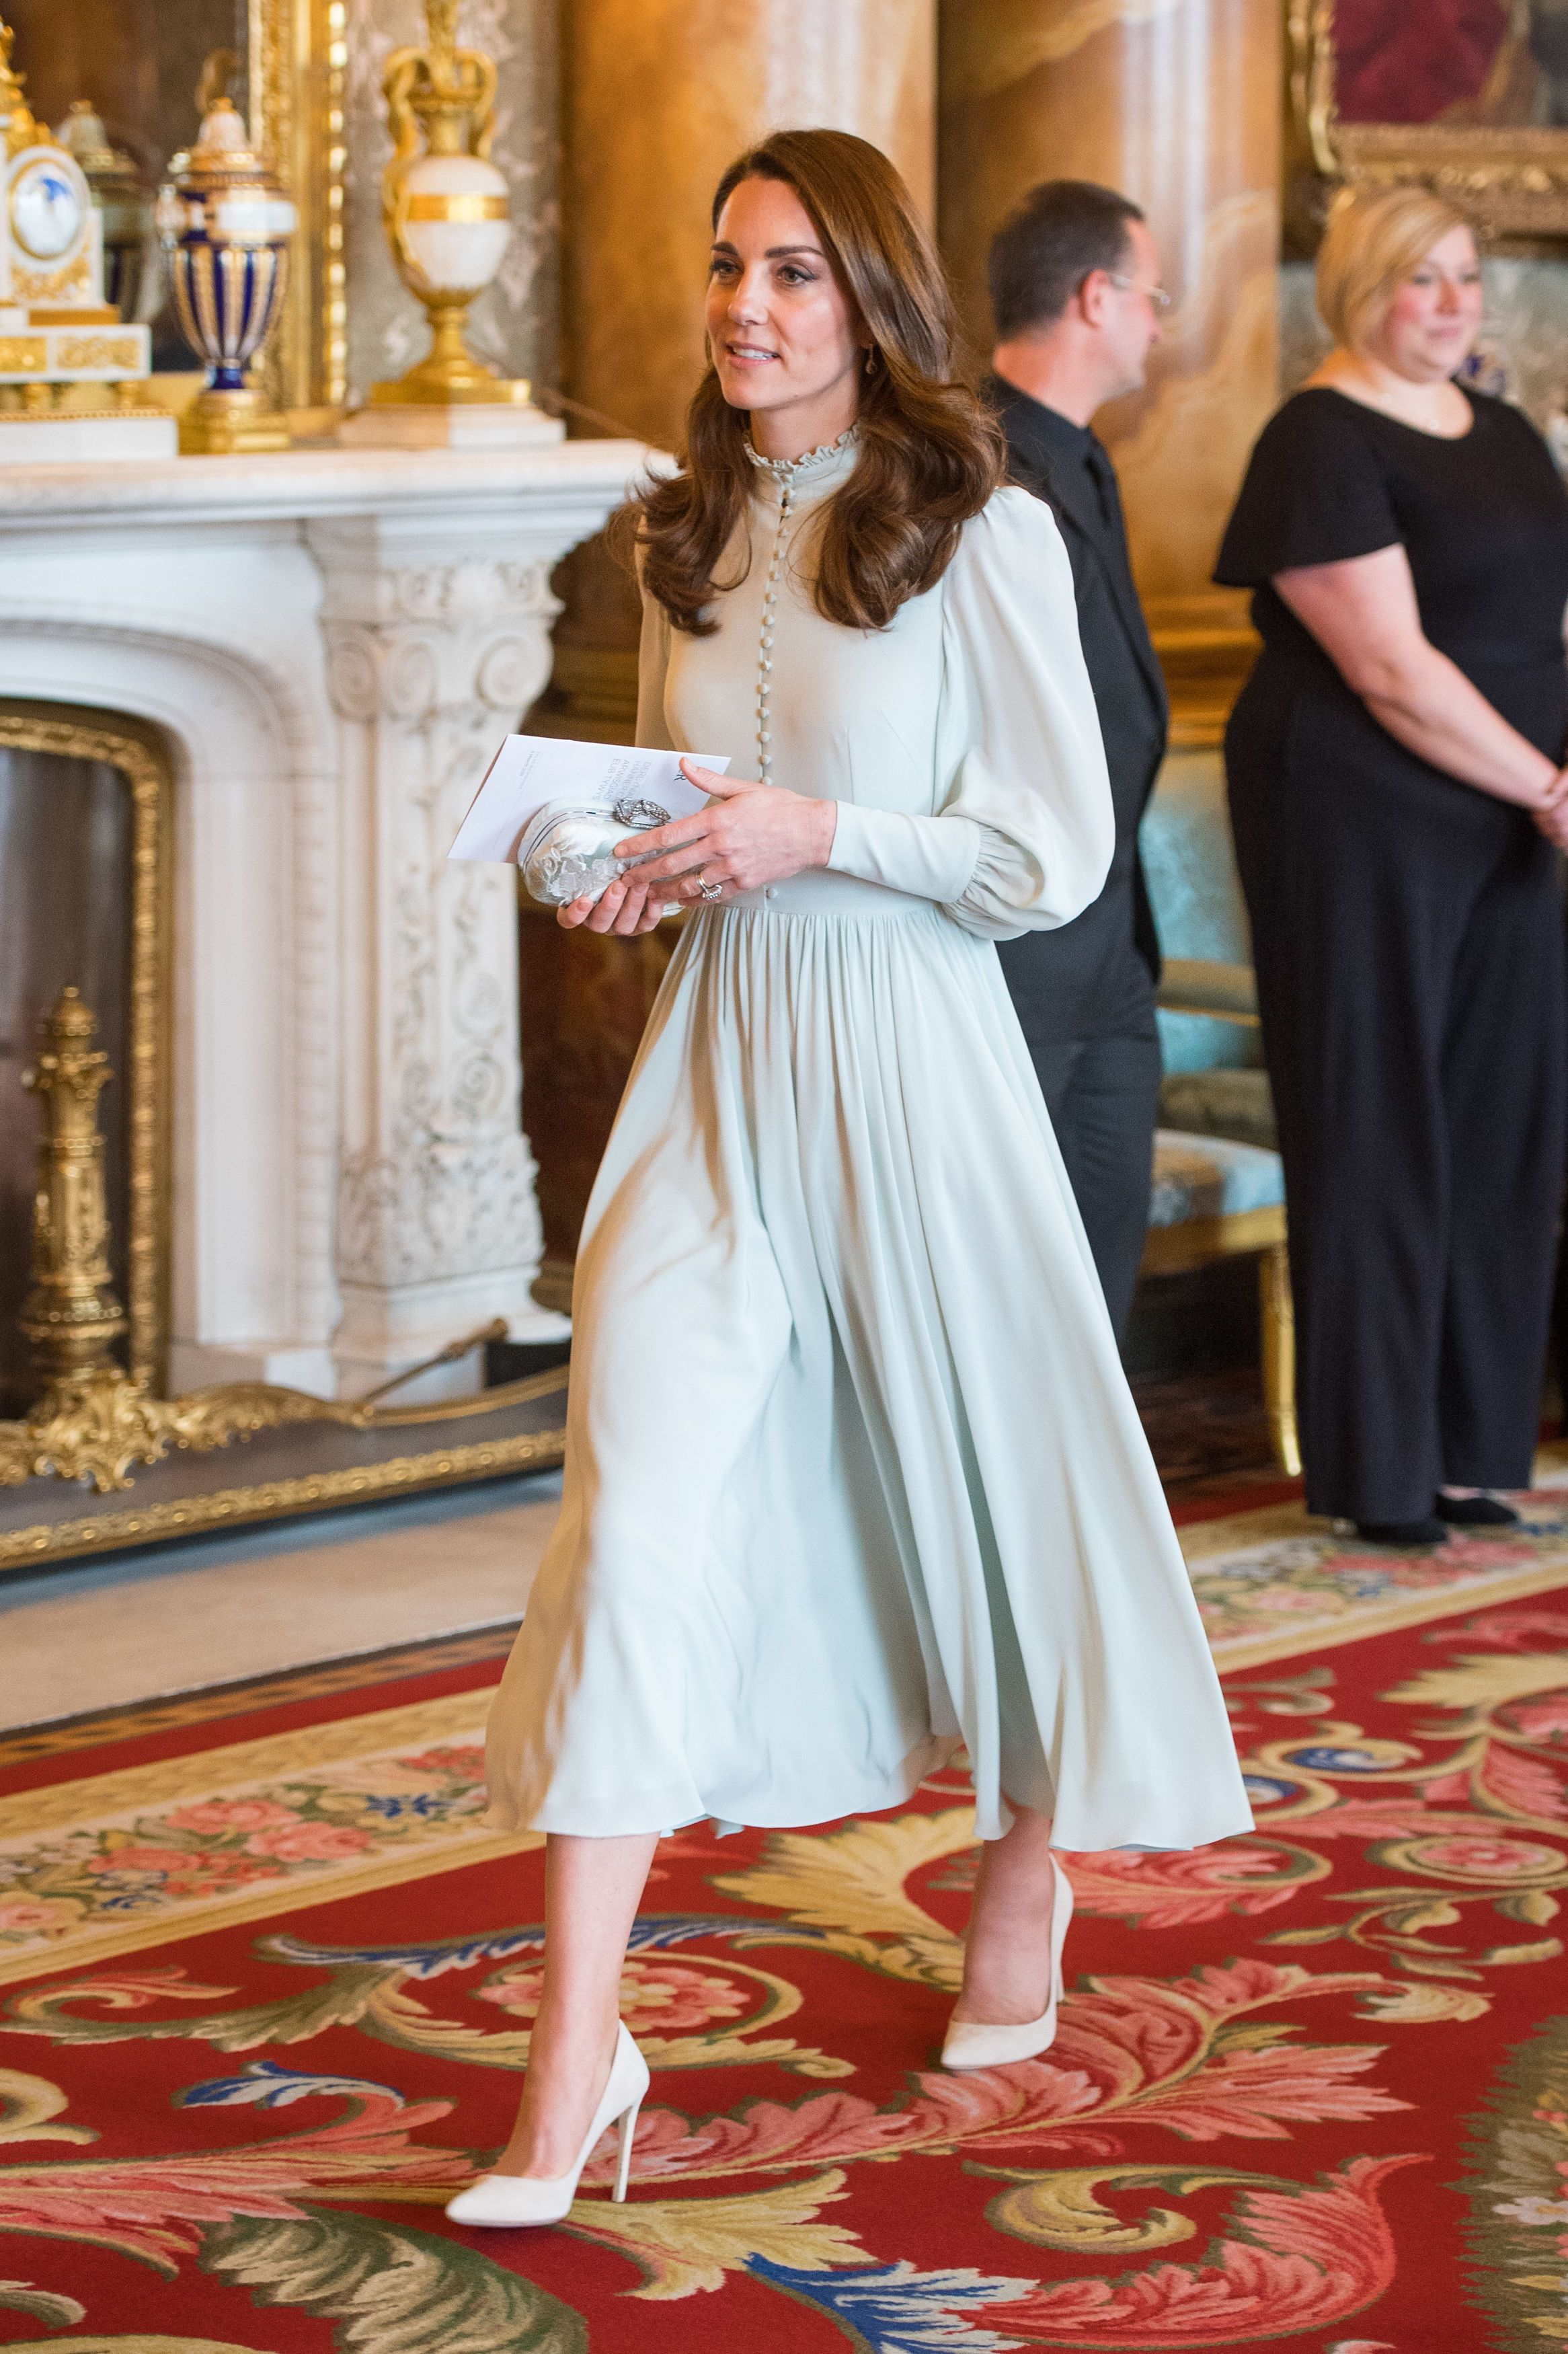 8987b6589aca Kate Middleton's Best Fashion Looks - Duchess of Cambridge's Chic Outfits